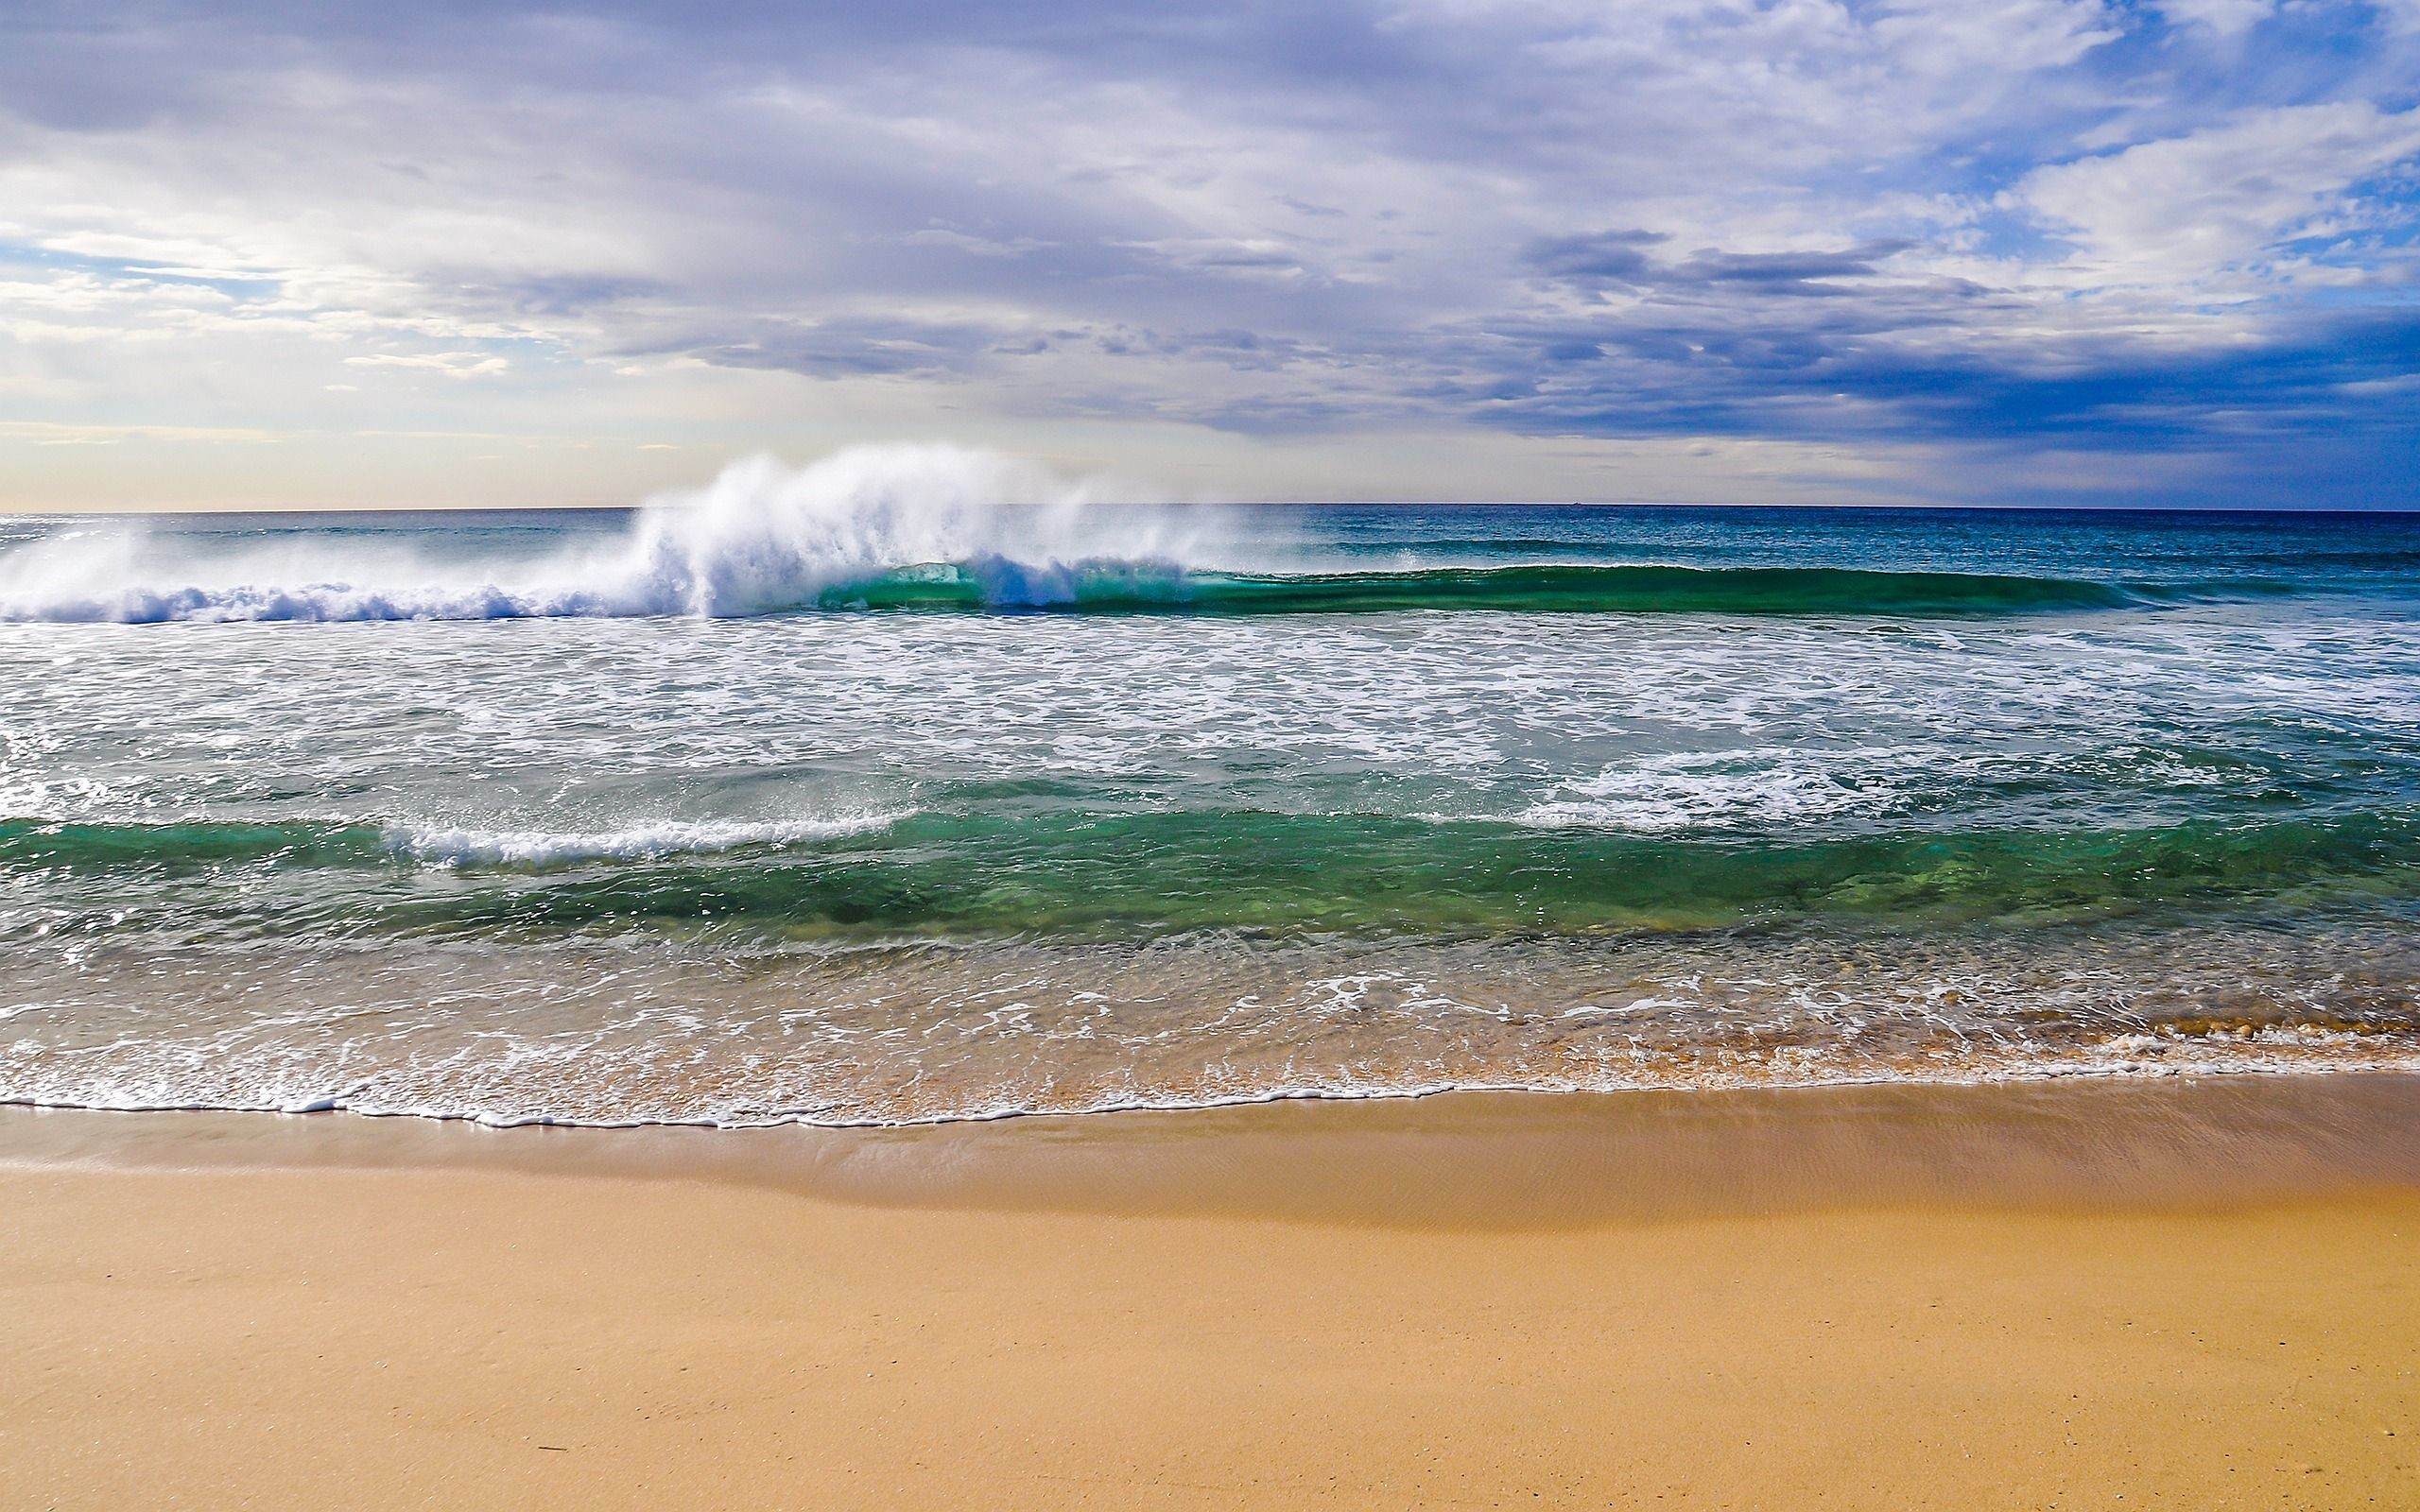 2560x1600 beach waves | Beautiful Beach Waves Wallpapers Pictures Photos Images